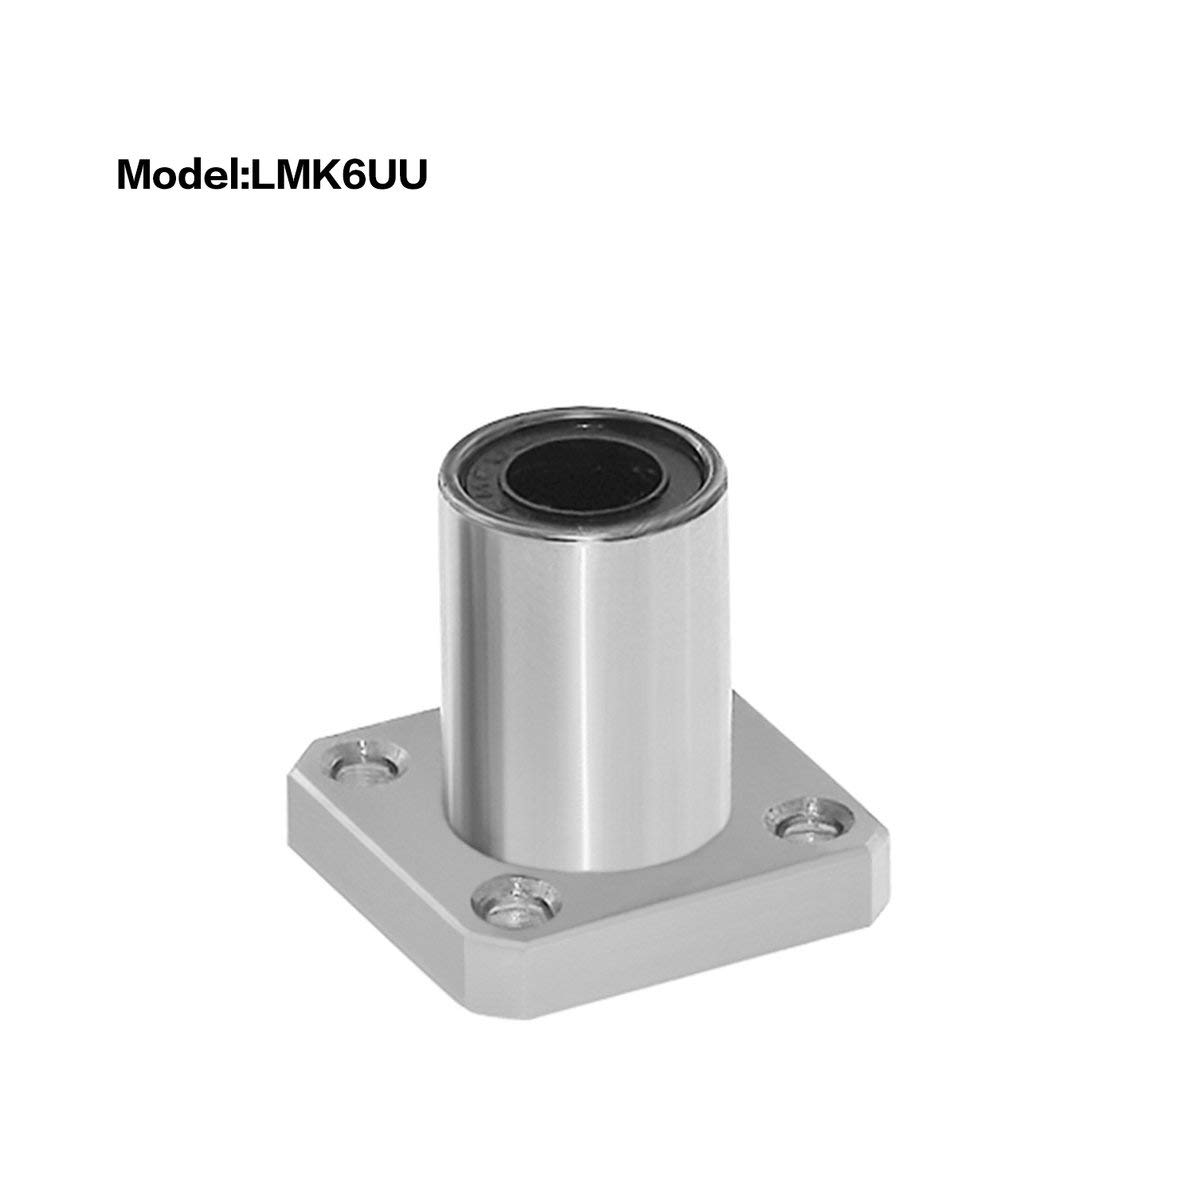 1PC LMK6UU dr:6mm Square Flange Type Linear Bearing Bushings for 3D Printer Linear Rod Stick Electric Tool CNC Parts